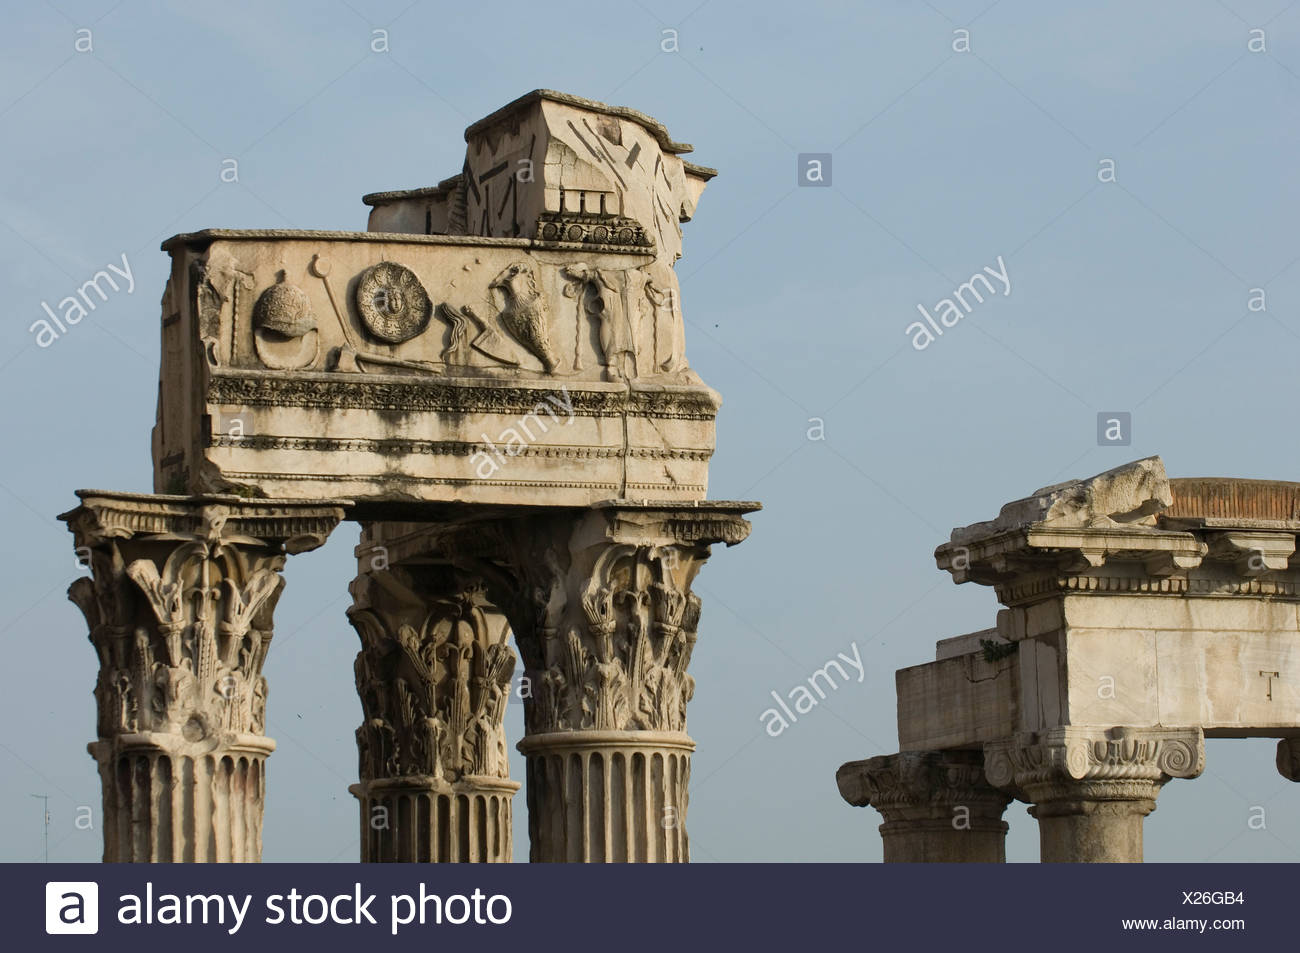 The Roman Forum gives us an idea of how ancient Rome was laid out. - Stock Image